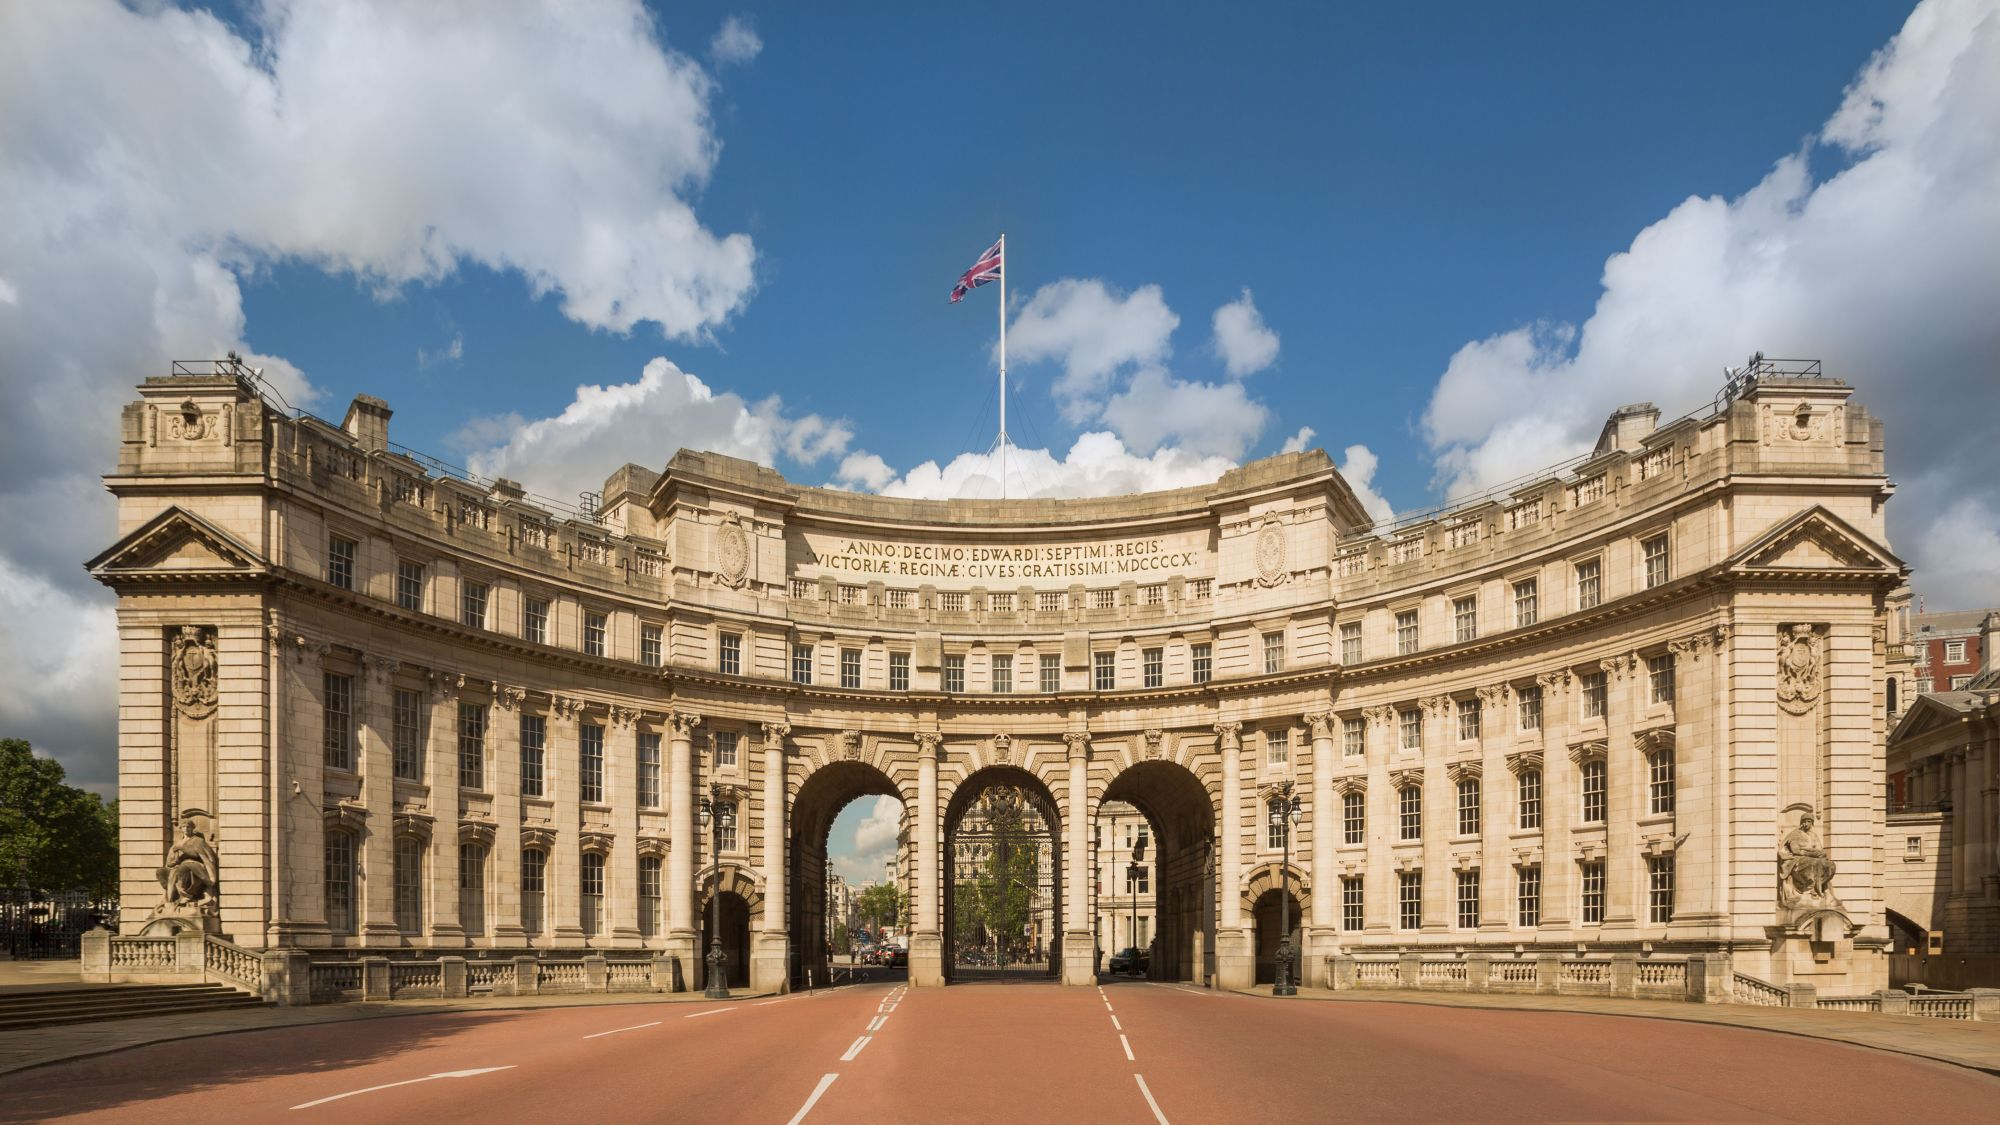 London's Admiralty Arch Set To Become Luxury Waldorf Astoria Hotel